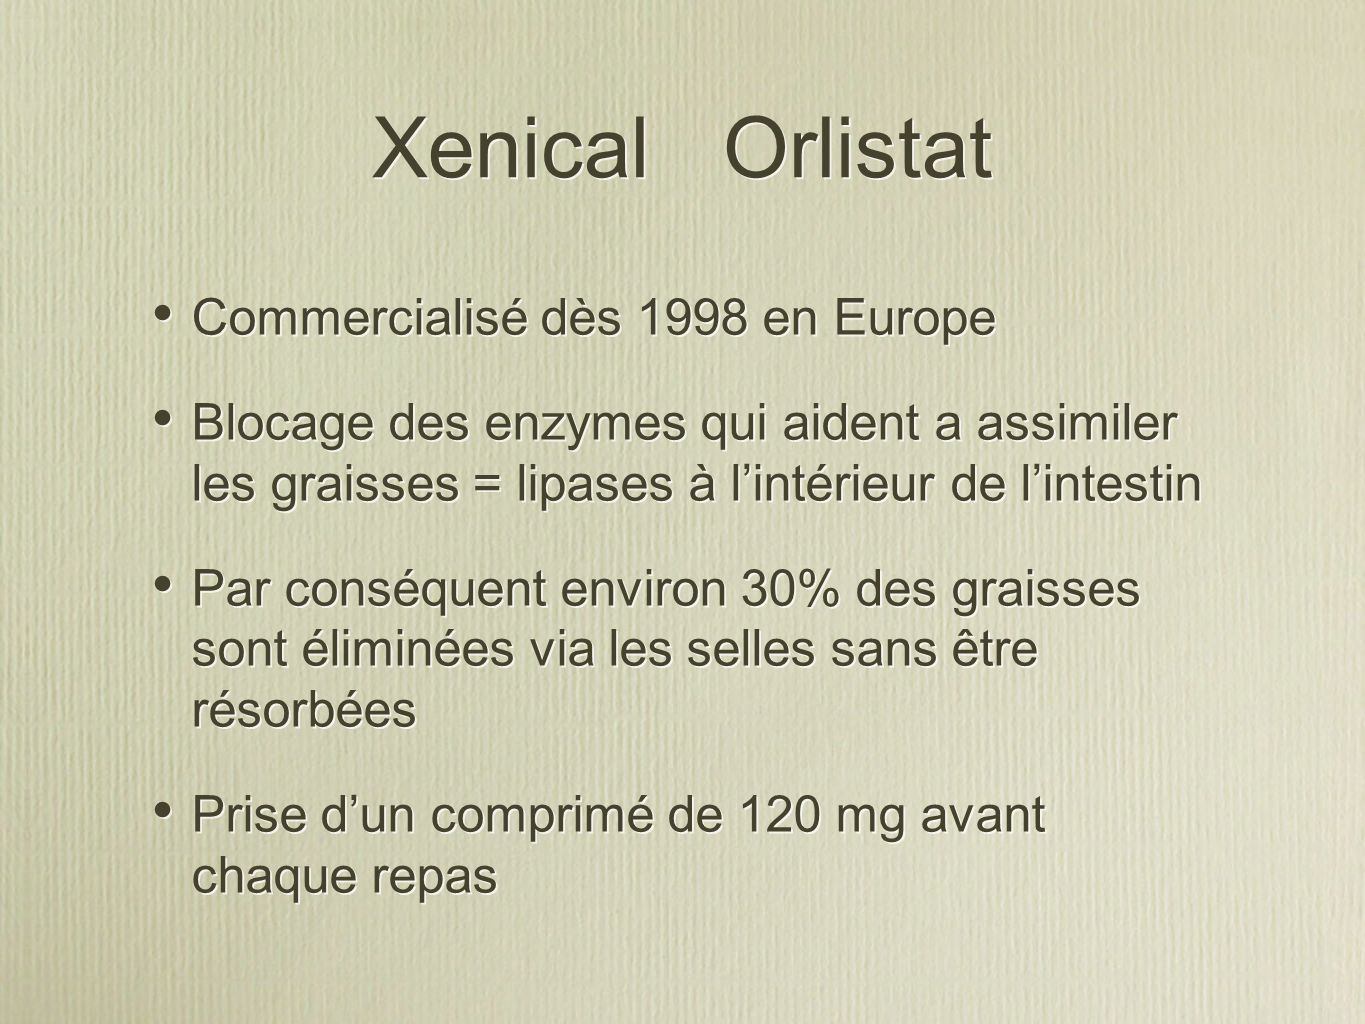 Xenical Orlistat Commercialisé dès 1998 en Europe